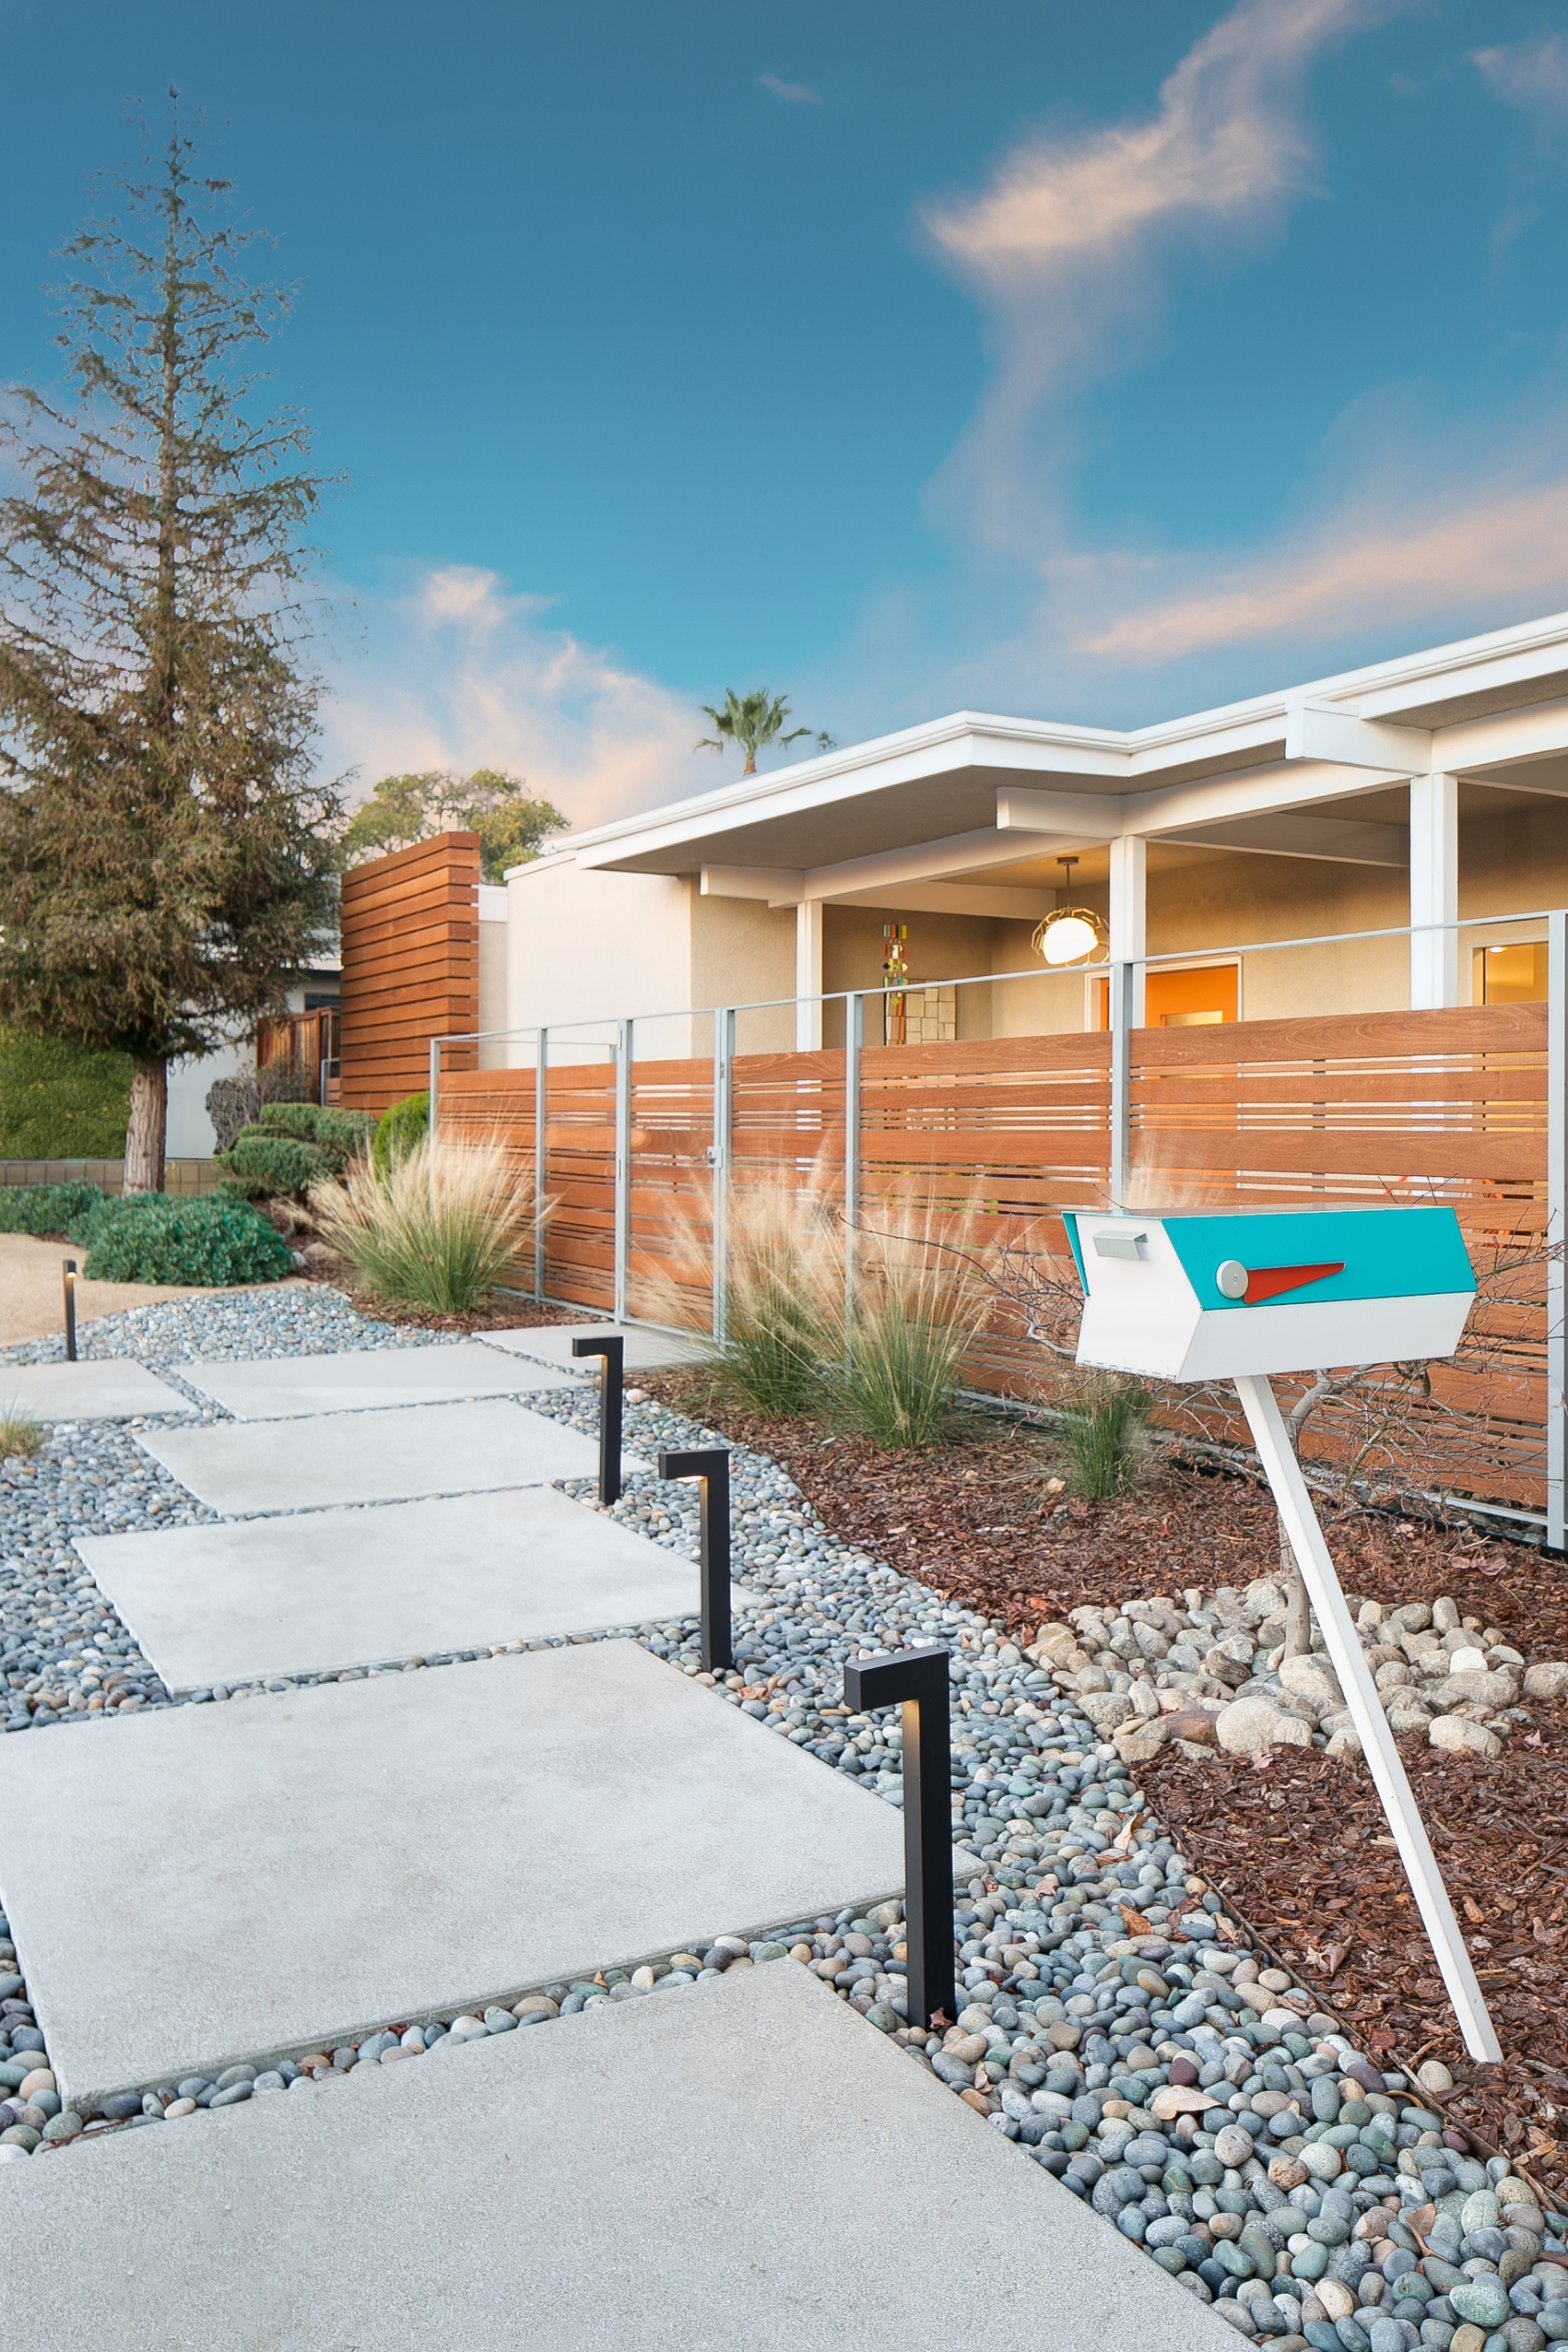 Mid-century modern exterior with a concrete paver walkway set in decorative stones, a teal mailbox, a wood fence, and the use of water-wise landscaping